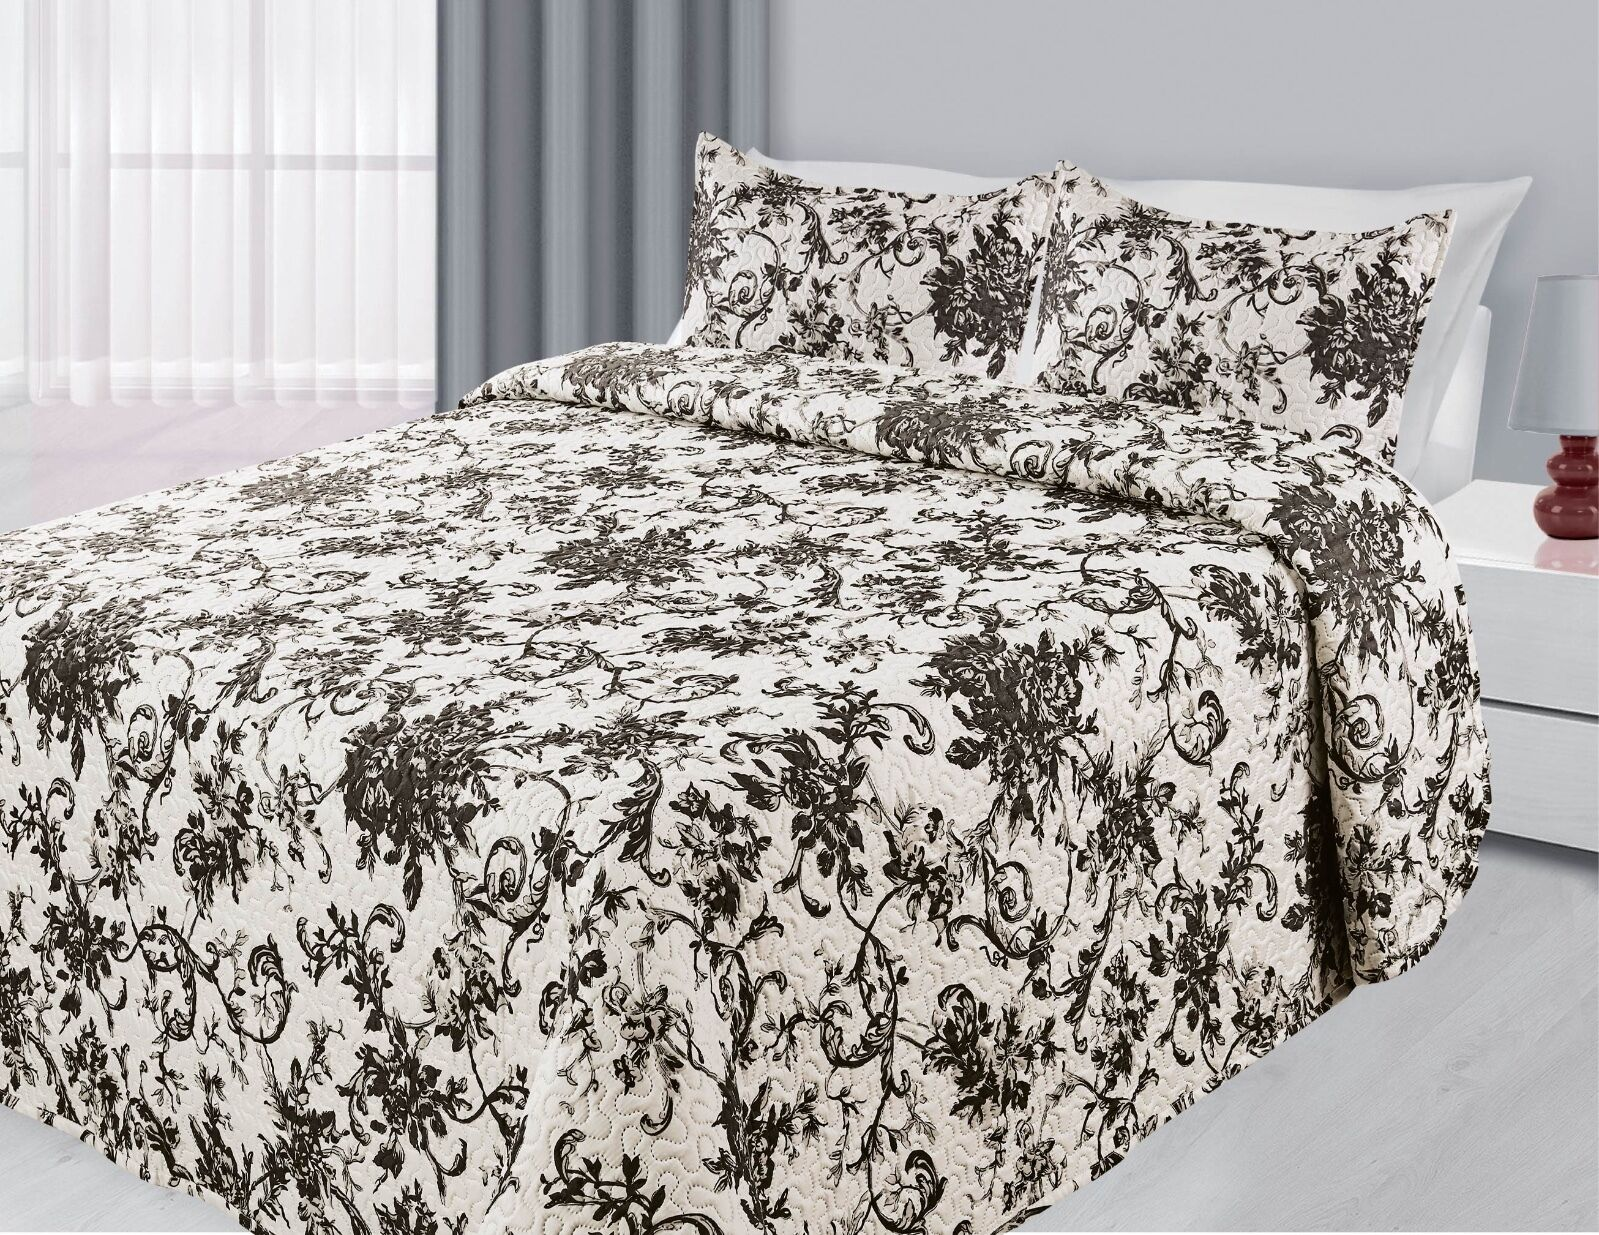 Floral 3-Piece Reversible Quilted Bedspread Coverlet Bedding Set - Black